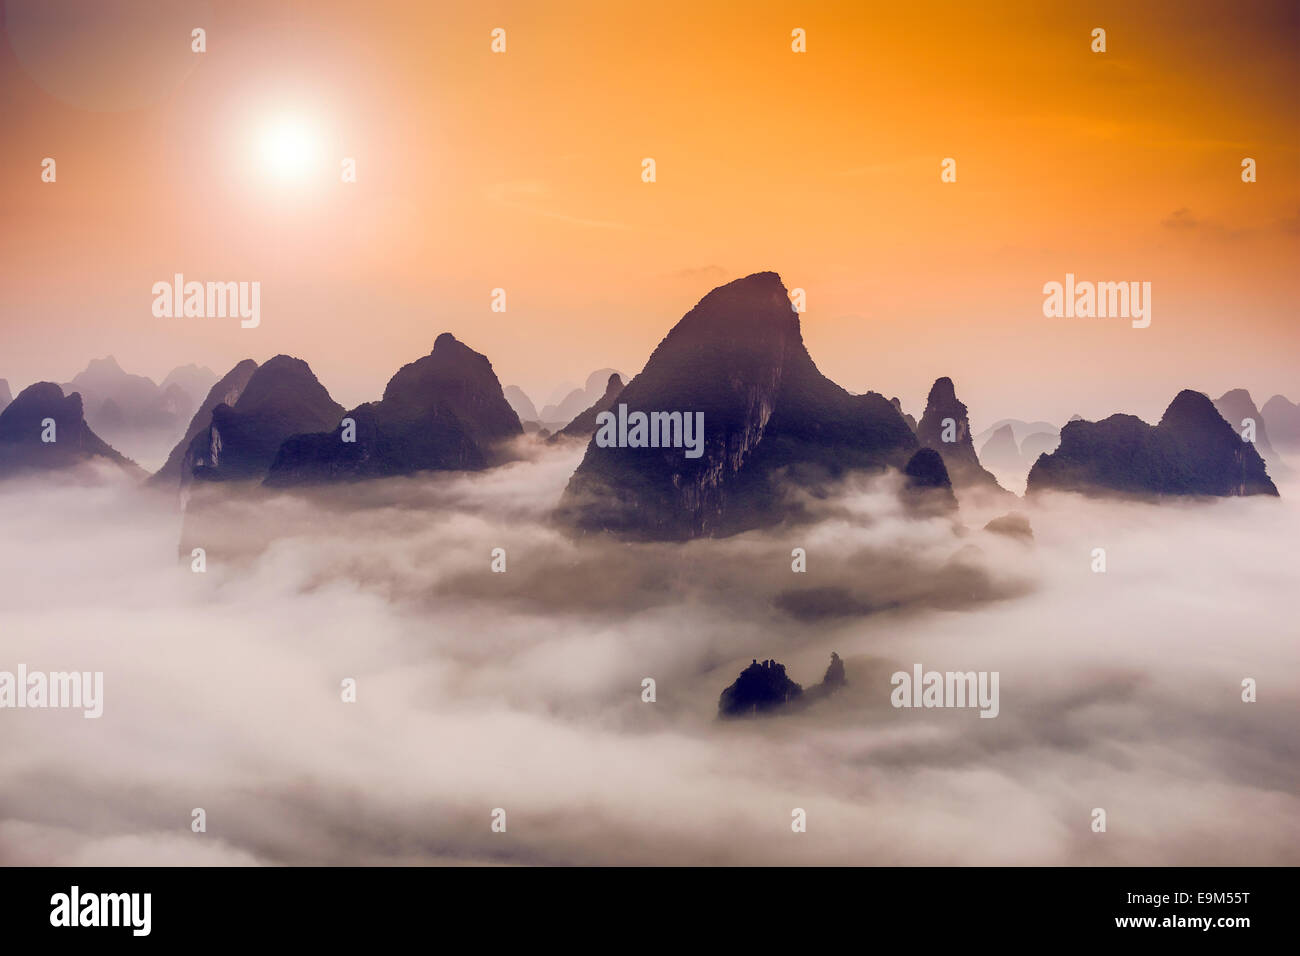 Karst Mountains of Xingping, China. - Stock Image